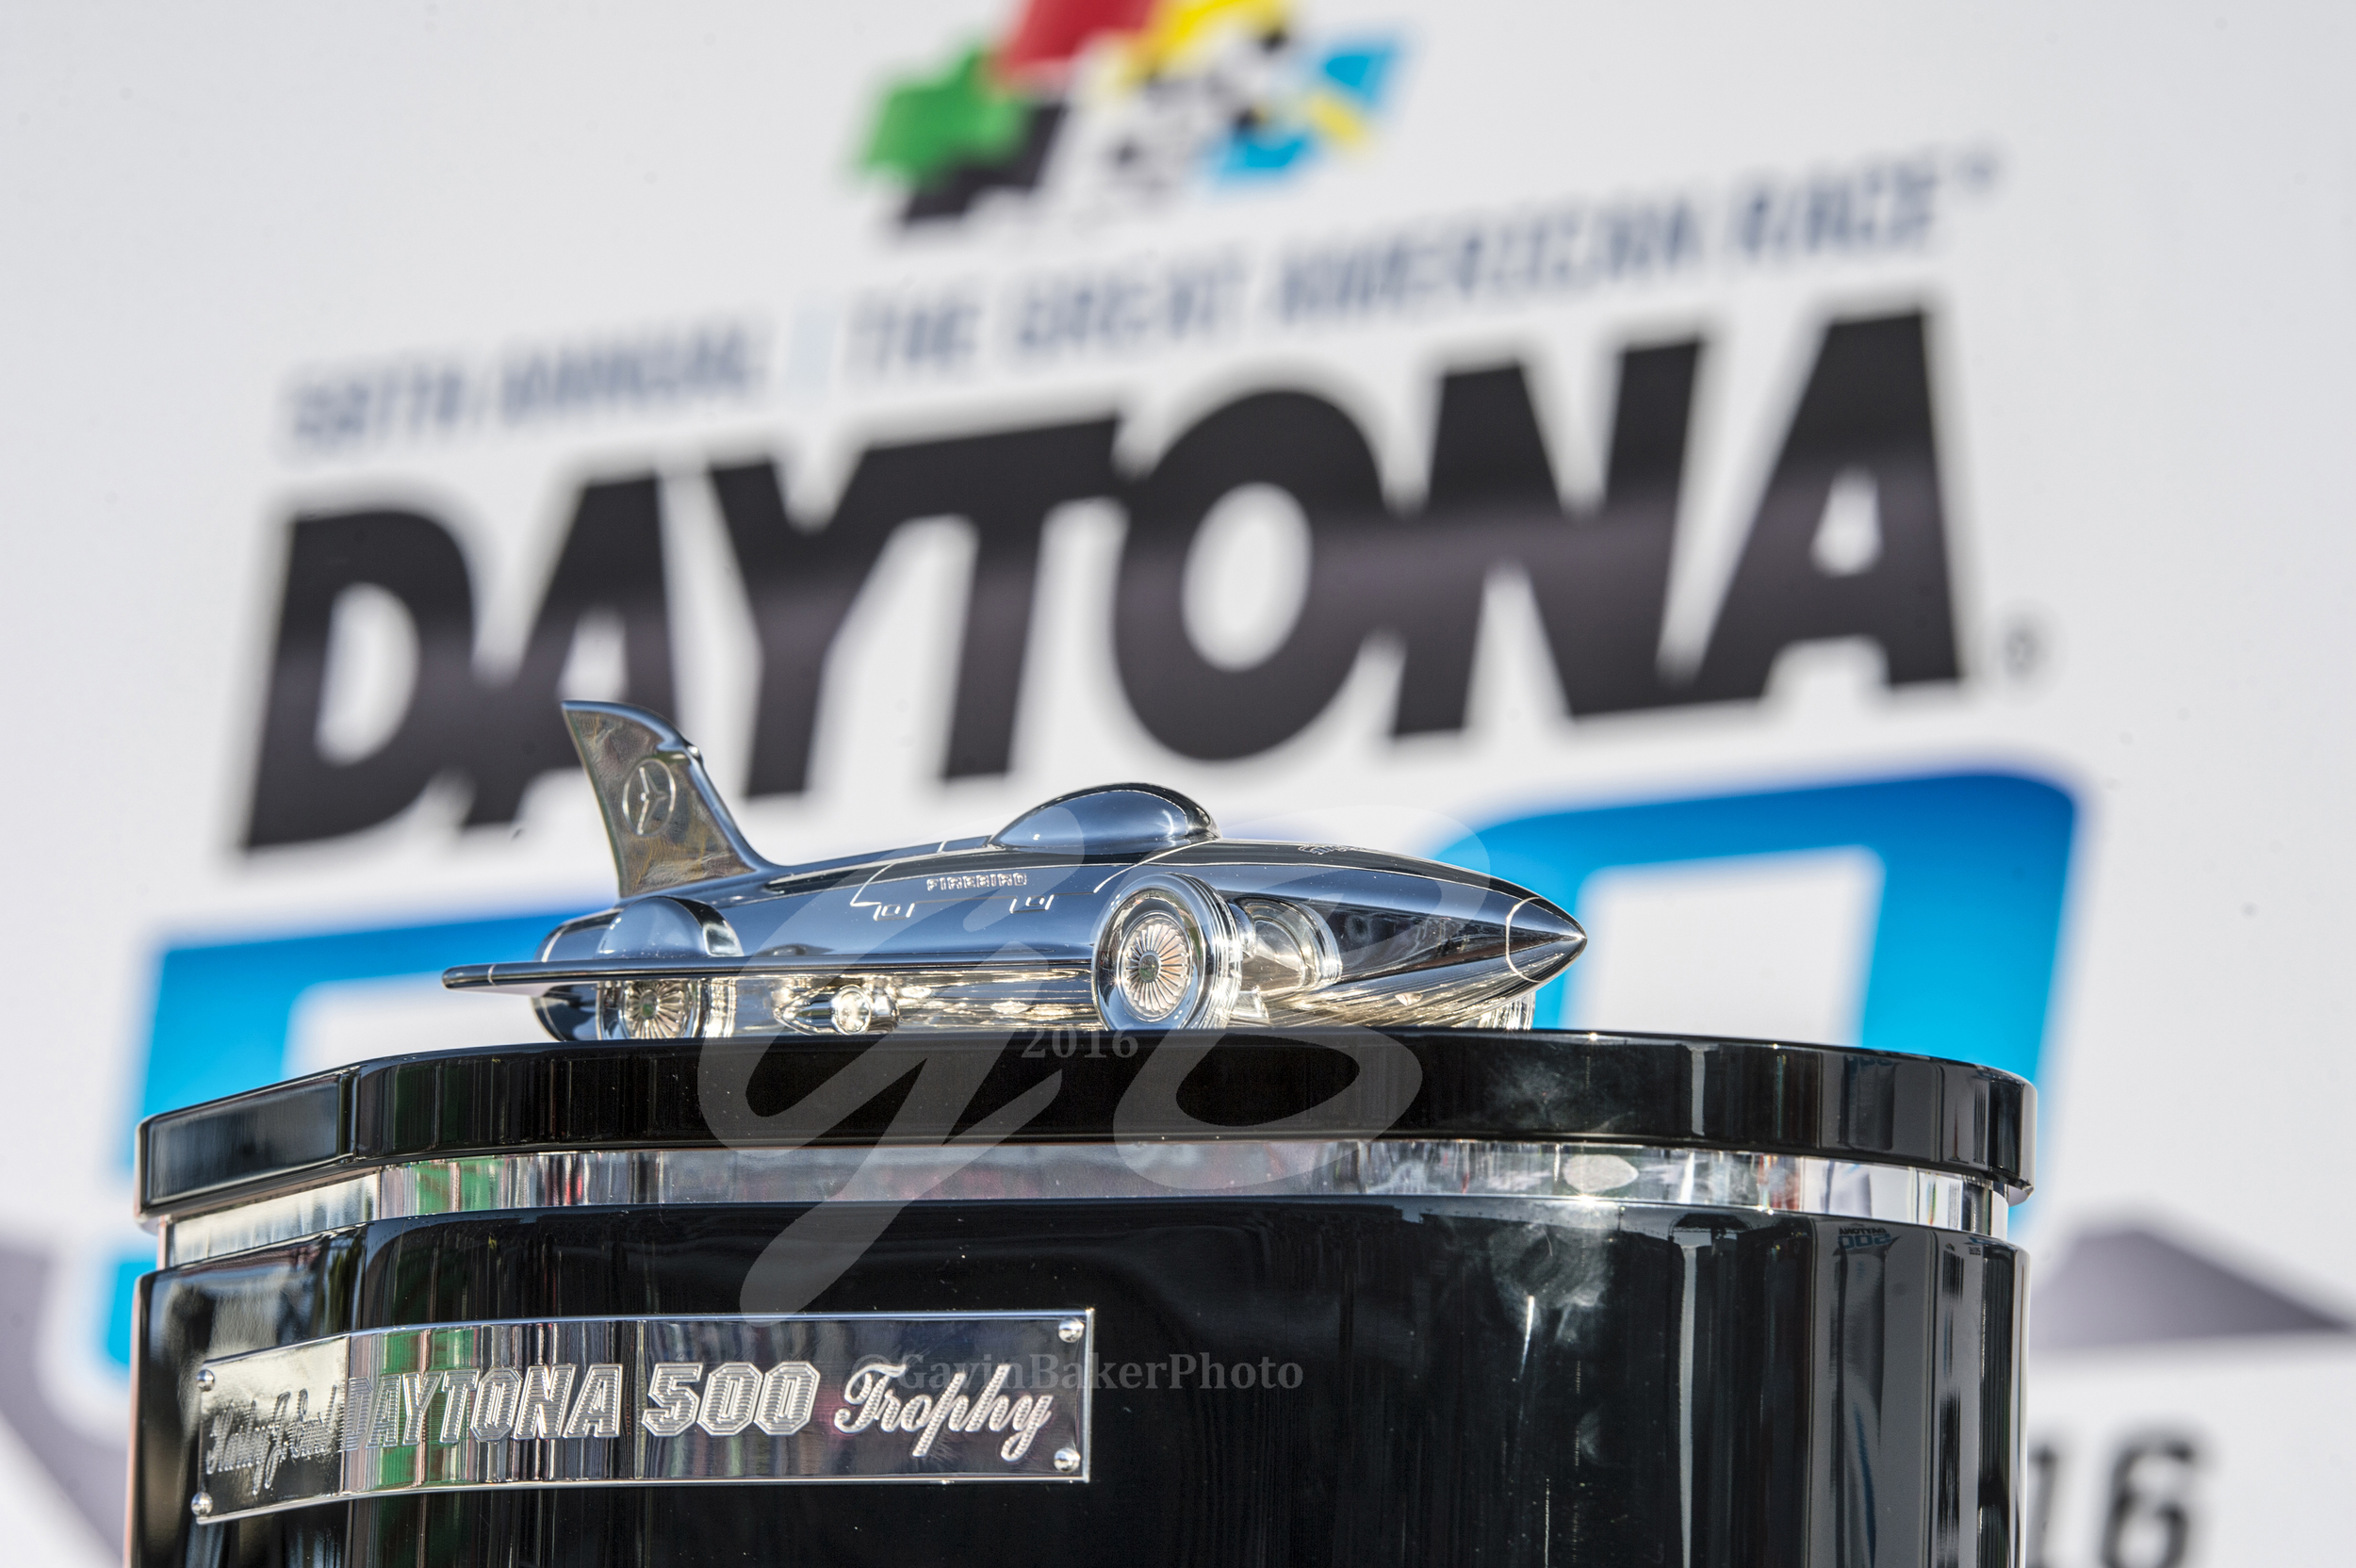 The Prize! The wining trophy for the Daytona 500 waits in Victory Lane for the best driver of the day to come and claim it.